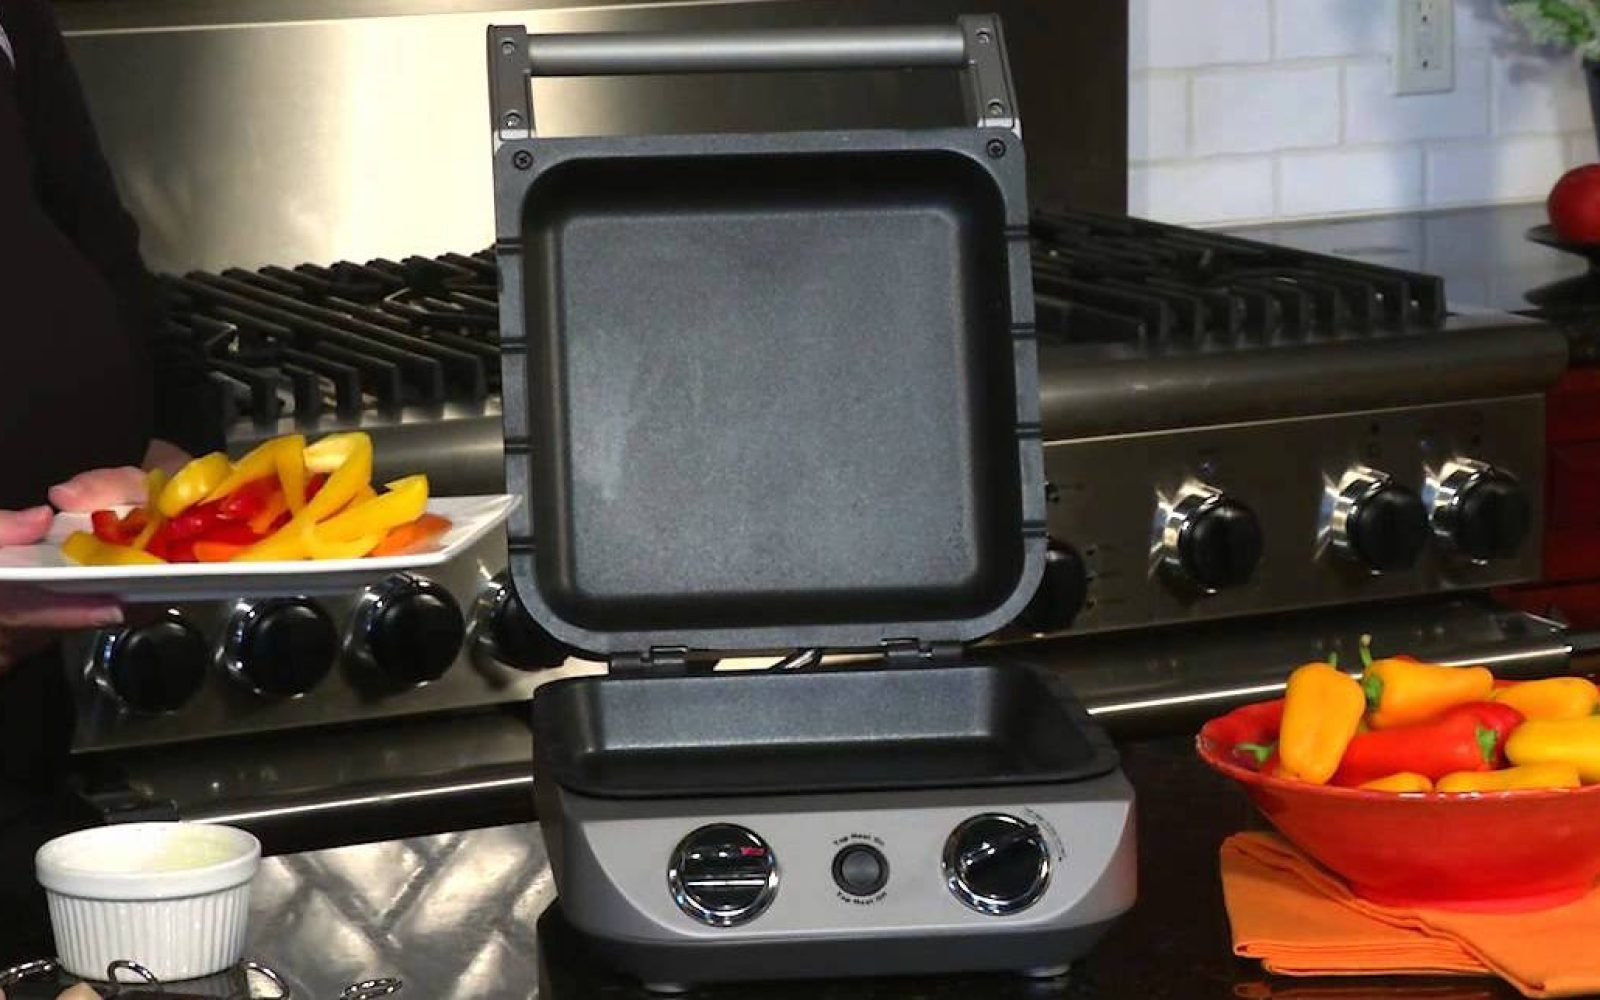 This Brushed Stainless Steel Cuisinart Countertop Cooker